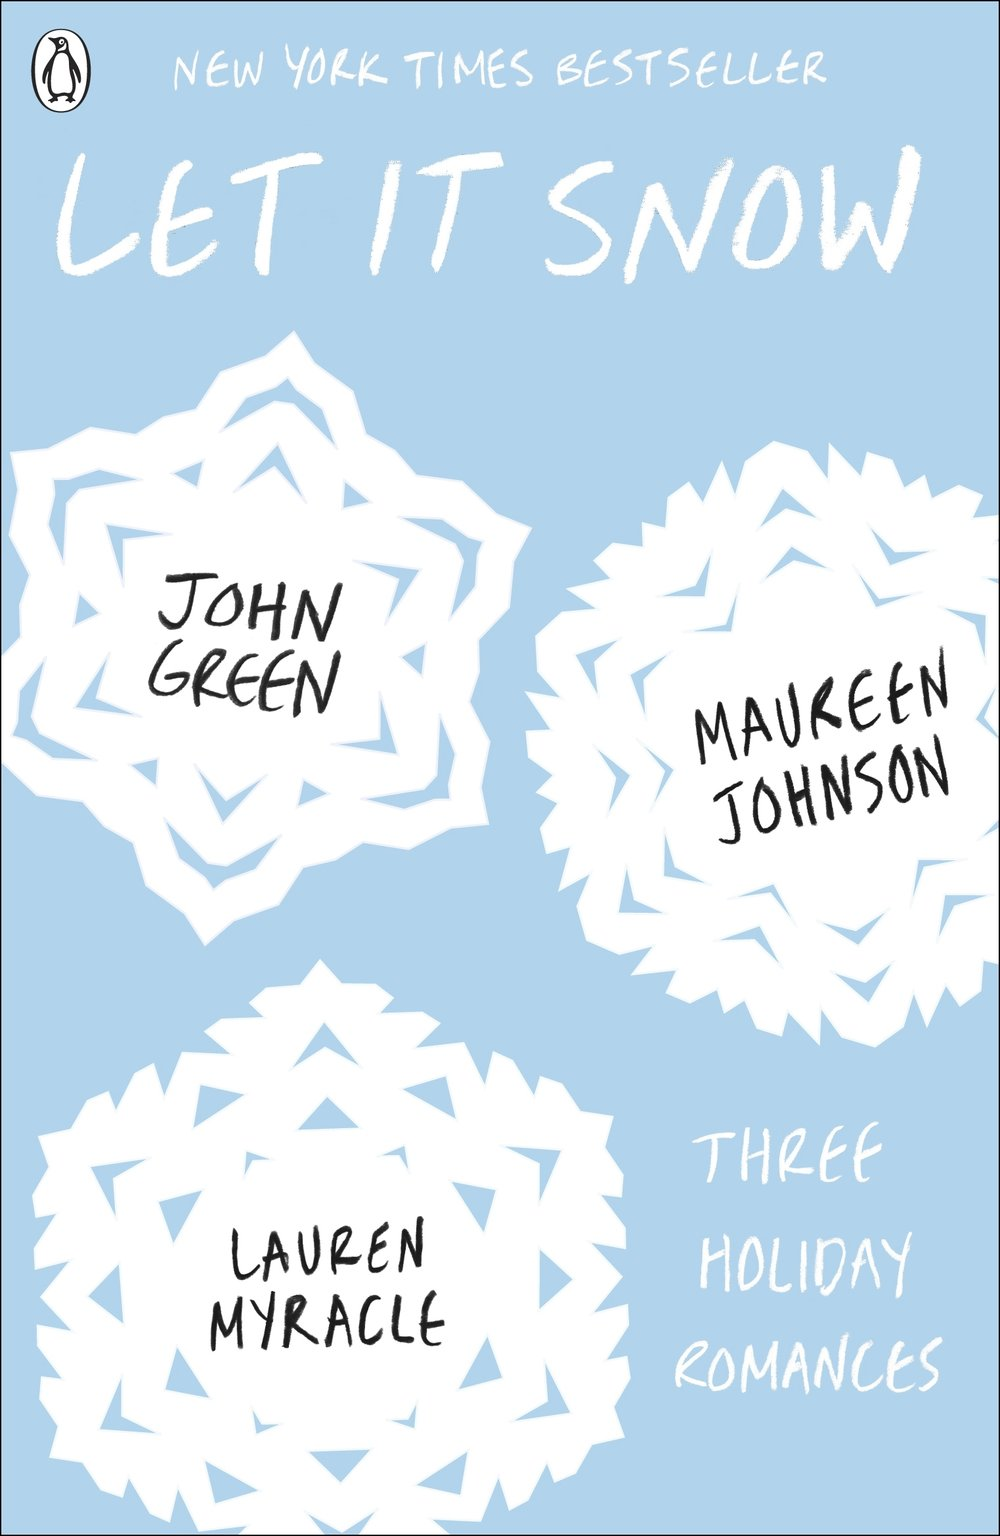 Let It Snow - By John Green, Maureen Johnson and Lauren Myracle